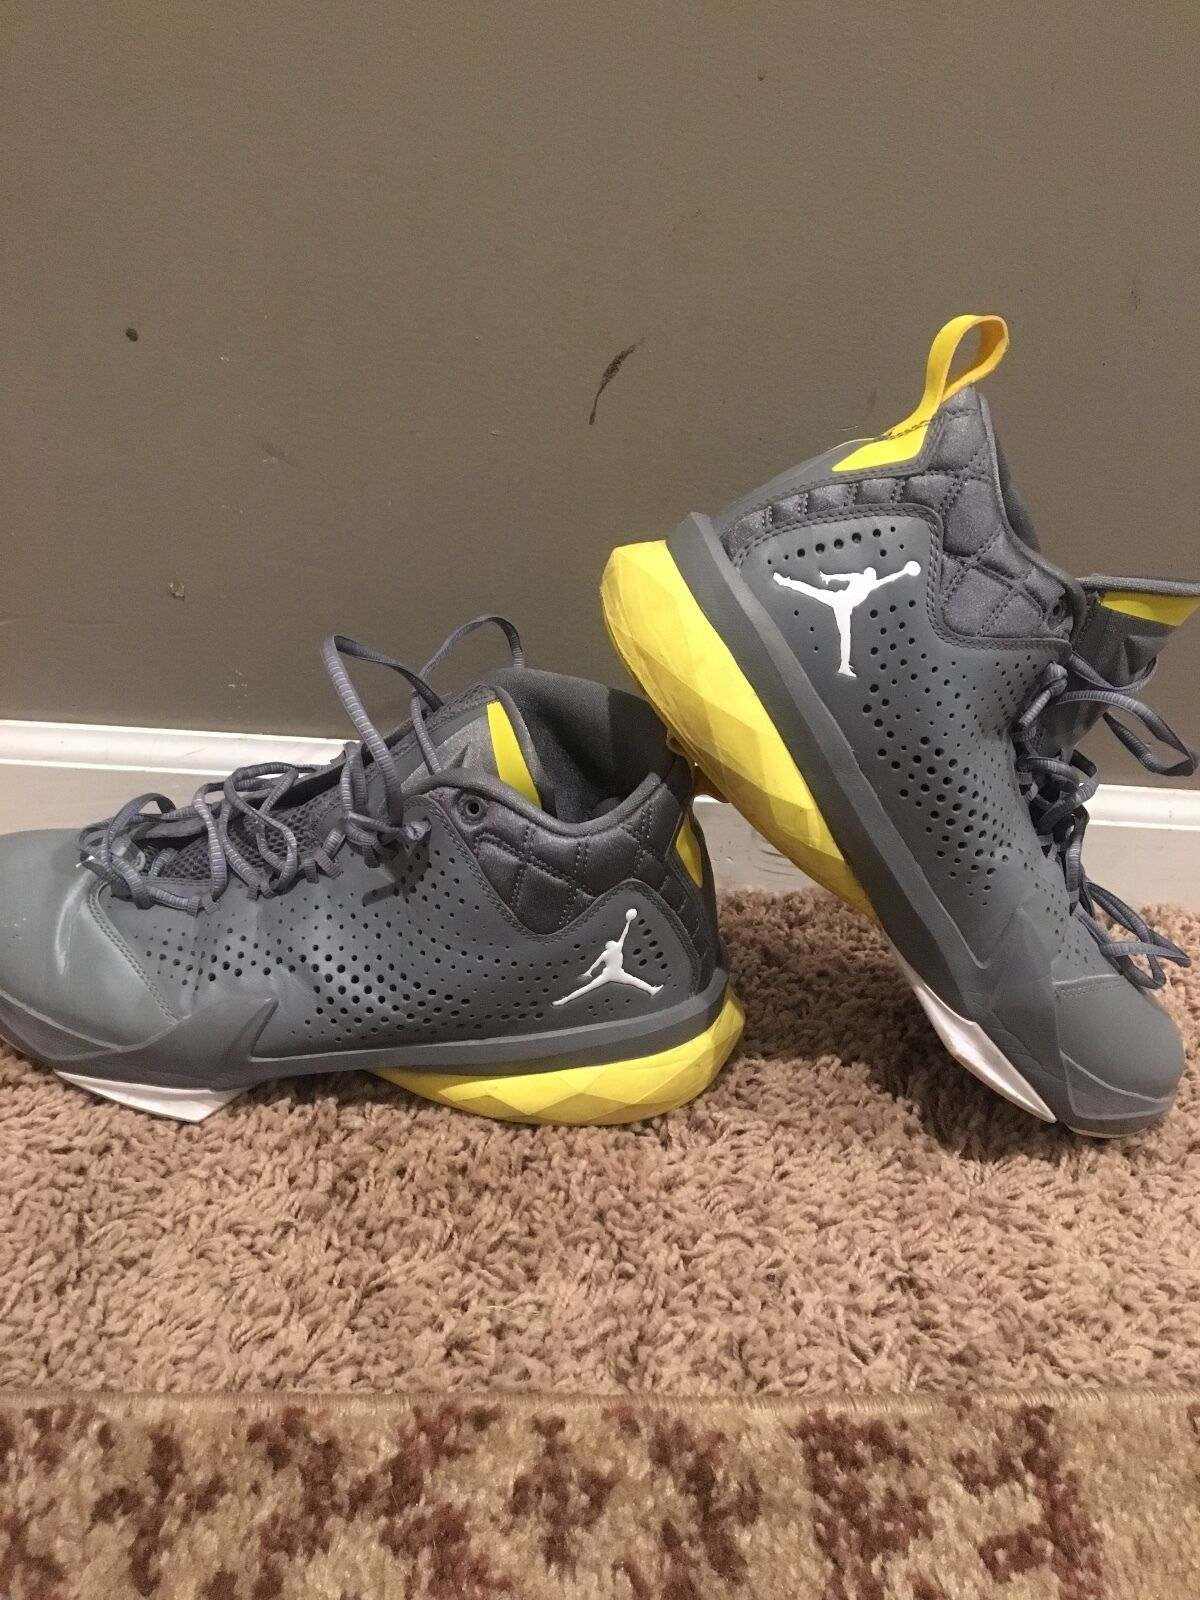 Nike basketball jordan lunarlon 10.5  Cheap and fashionable